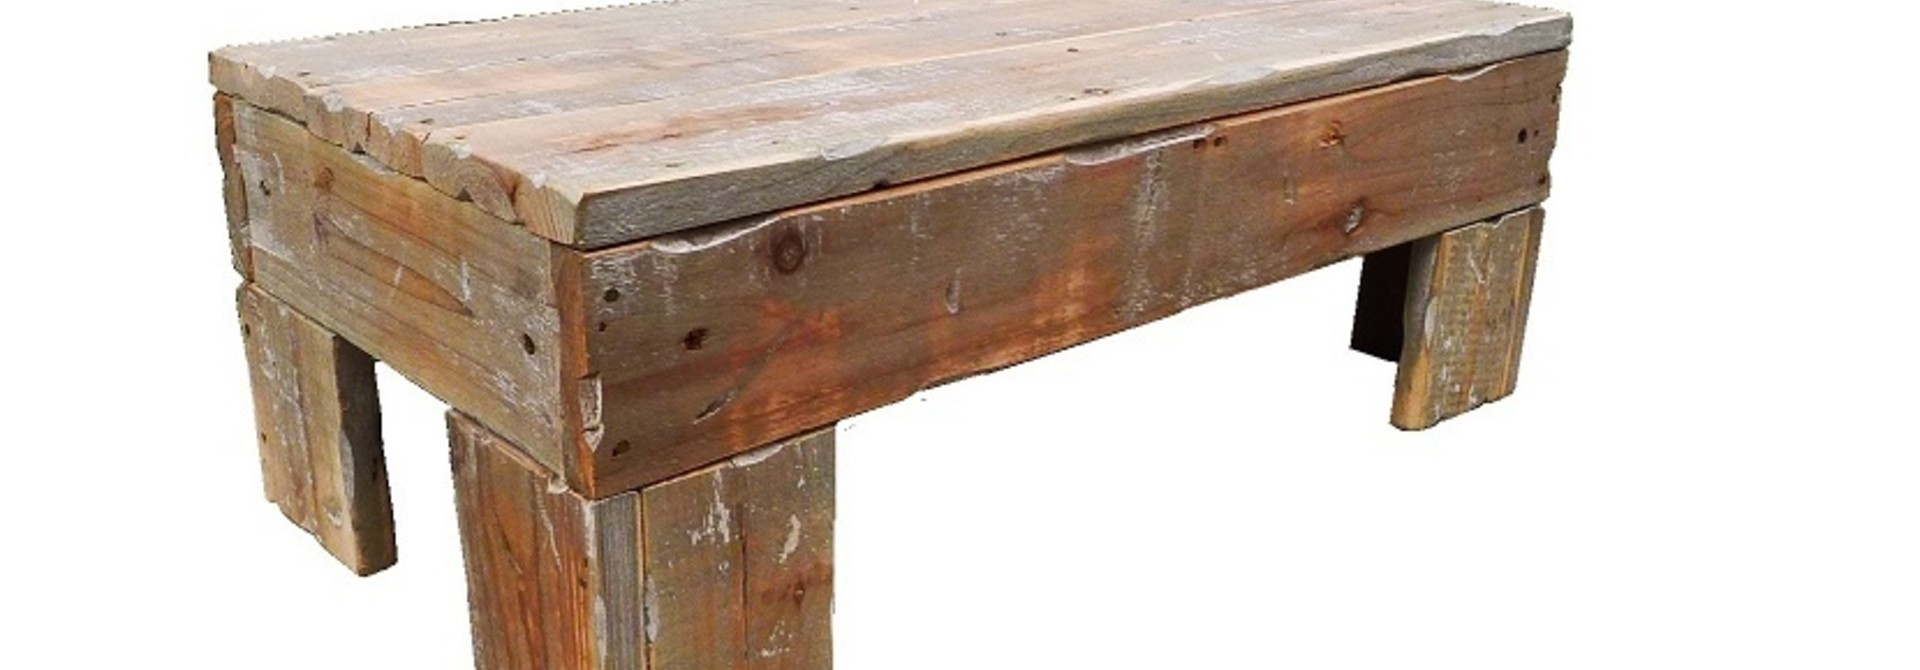 shop int old dutch up table 33/66